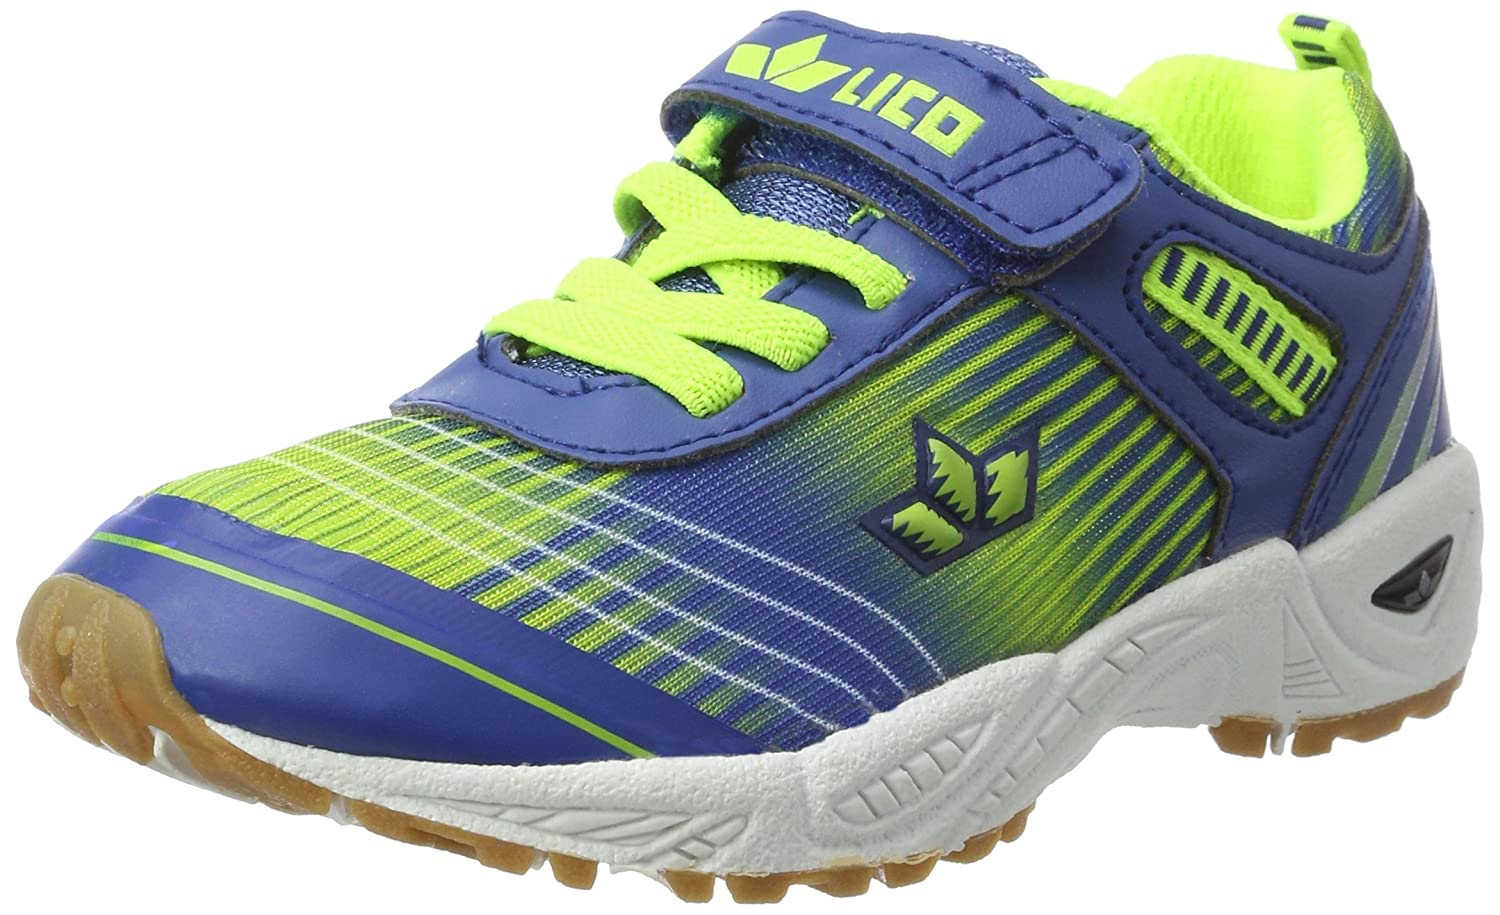 Hommes Barney Vs Multisports Chaussures D'intérieur Lico MDHhj